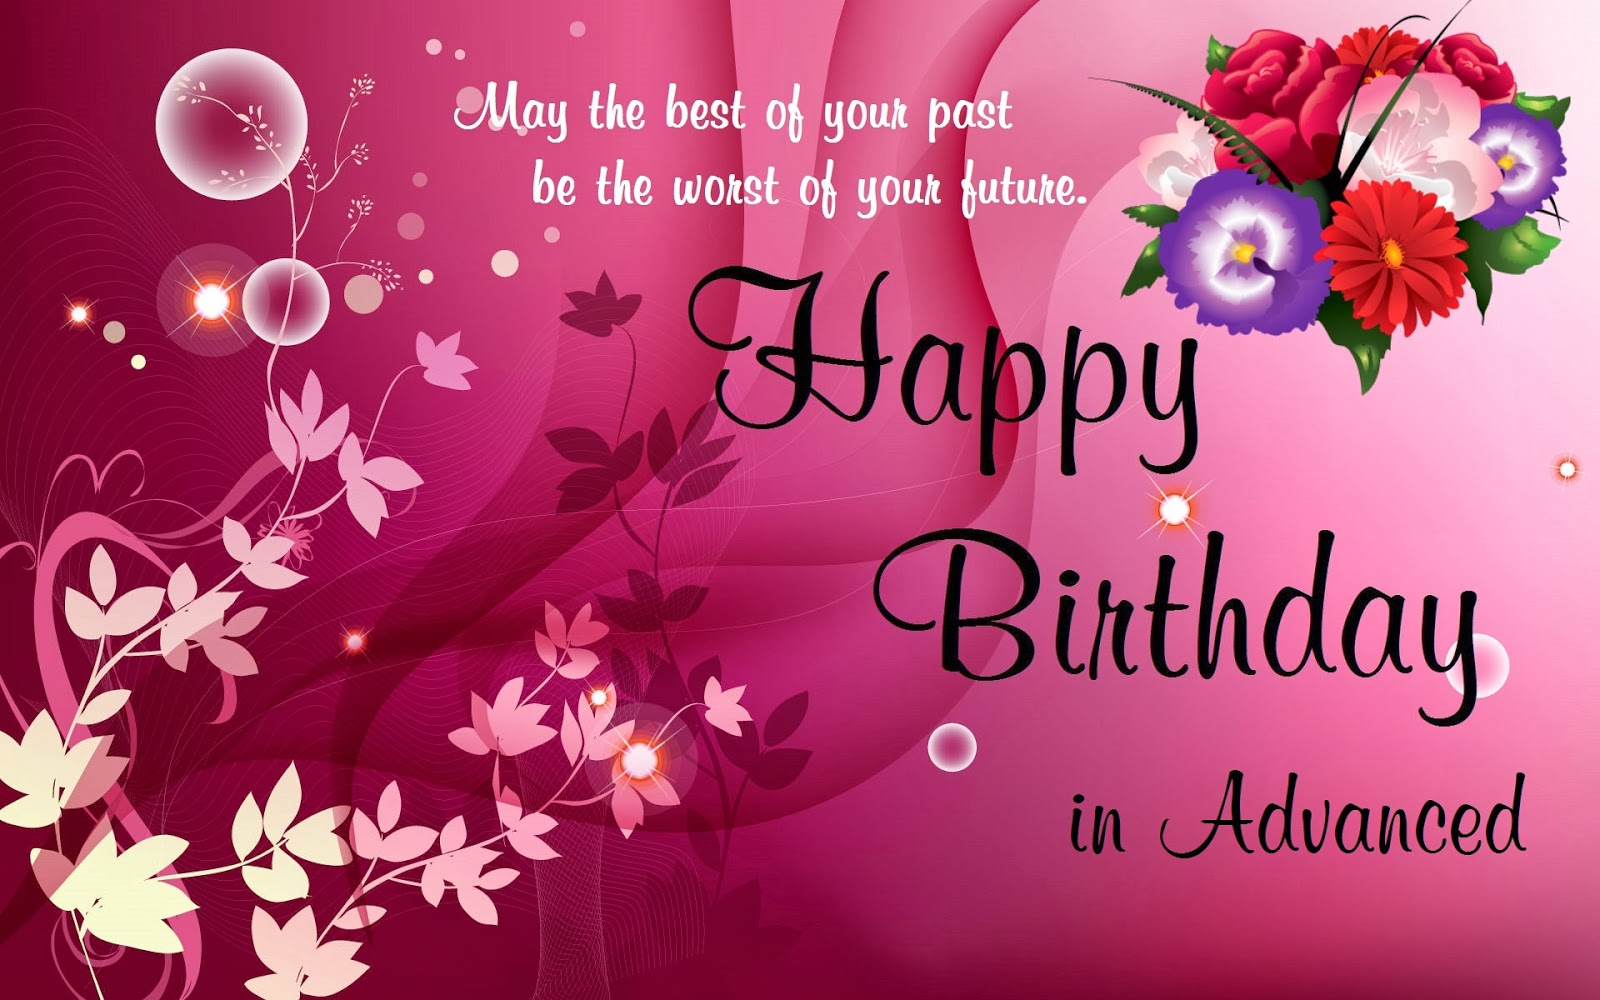 Best famous birthday greeting cards studentschillout birthday greeting to a friend kristyandbryce Image collections